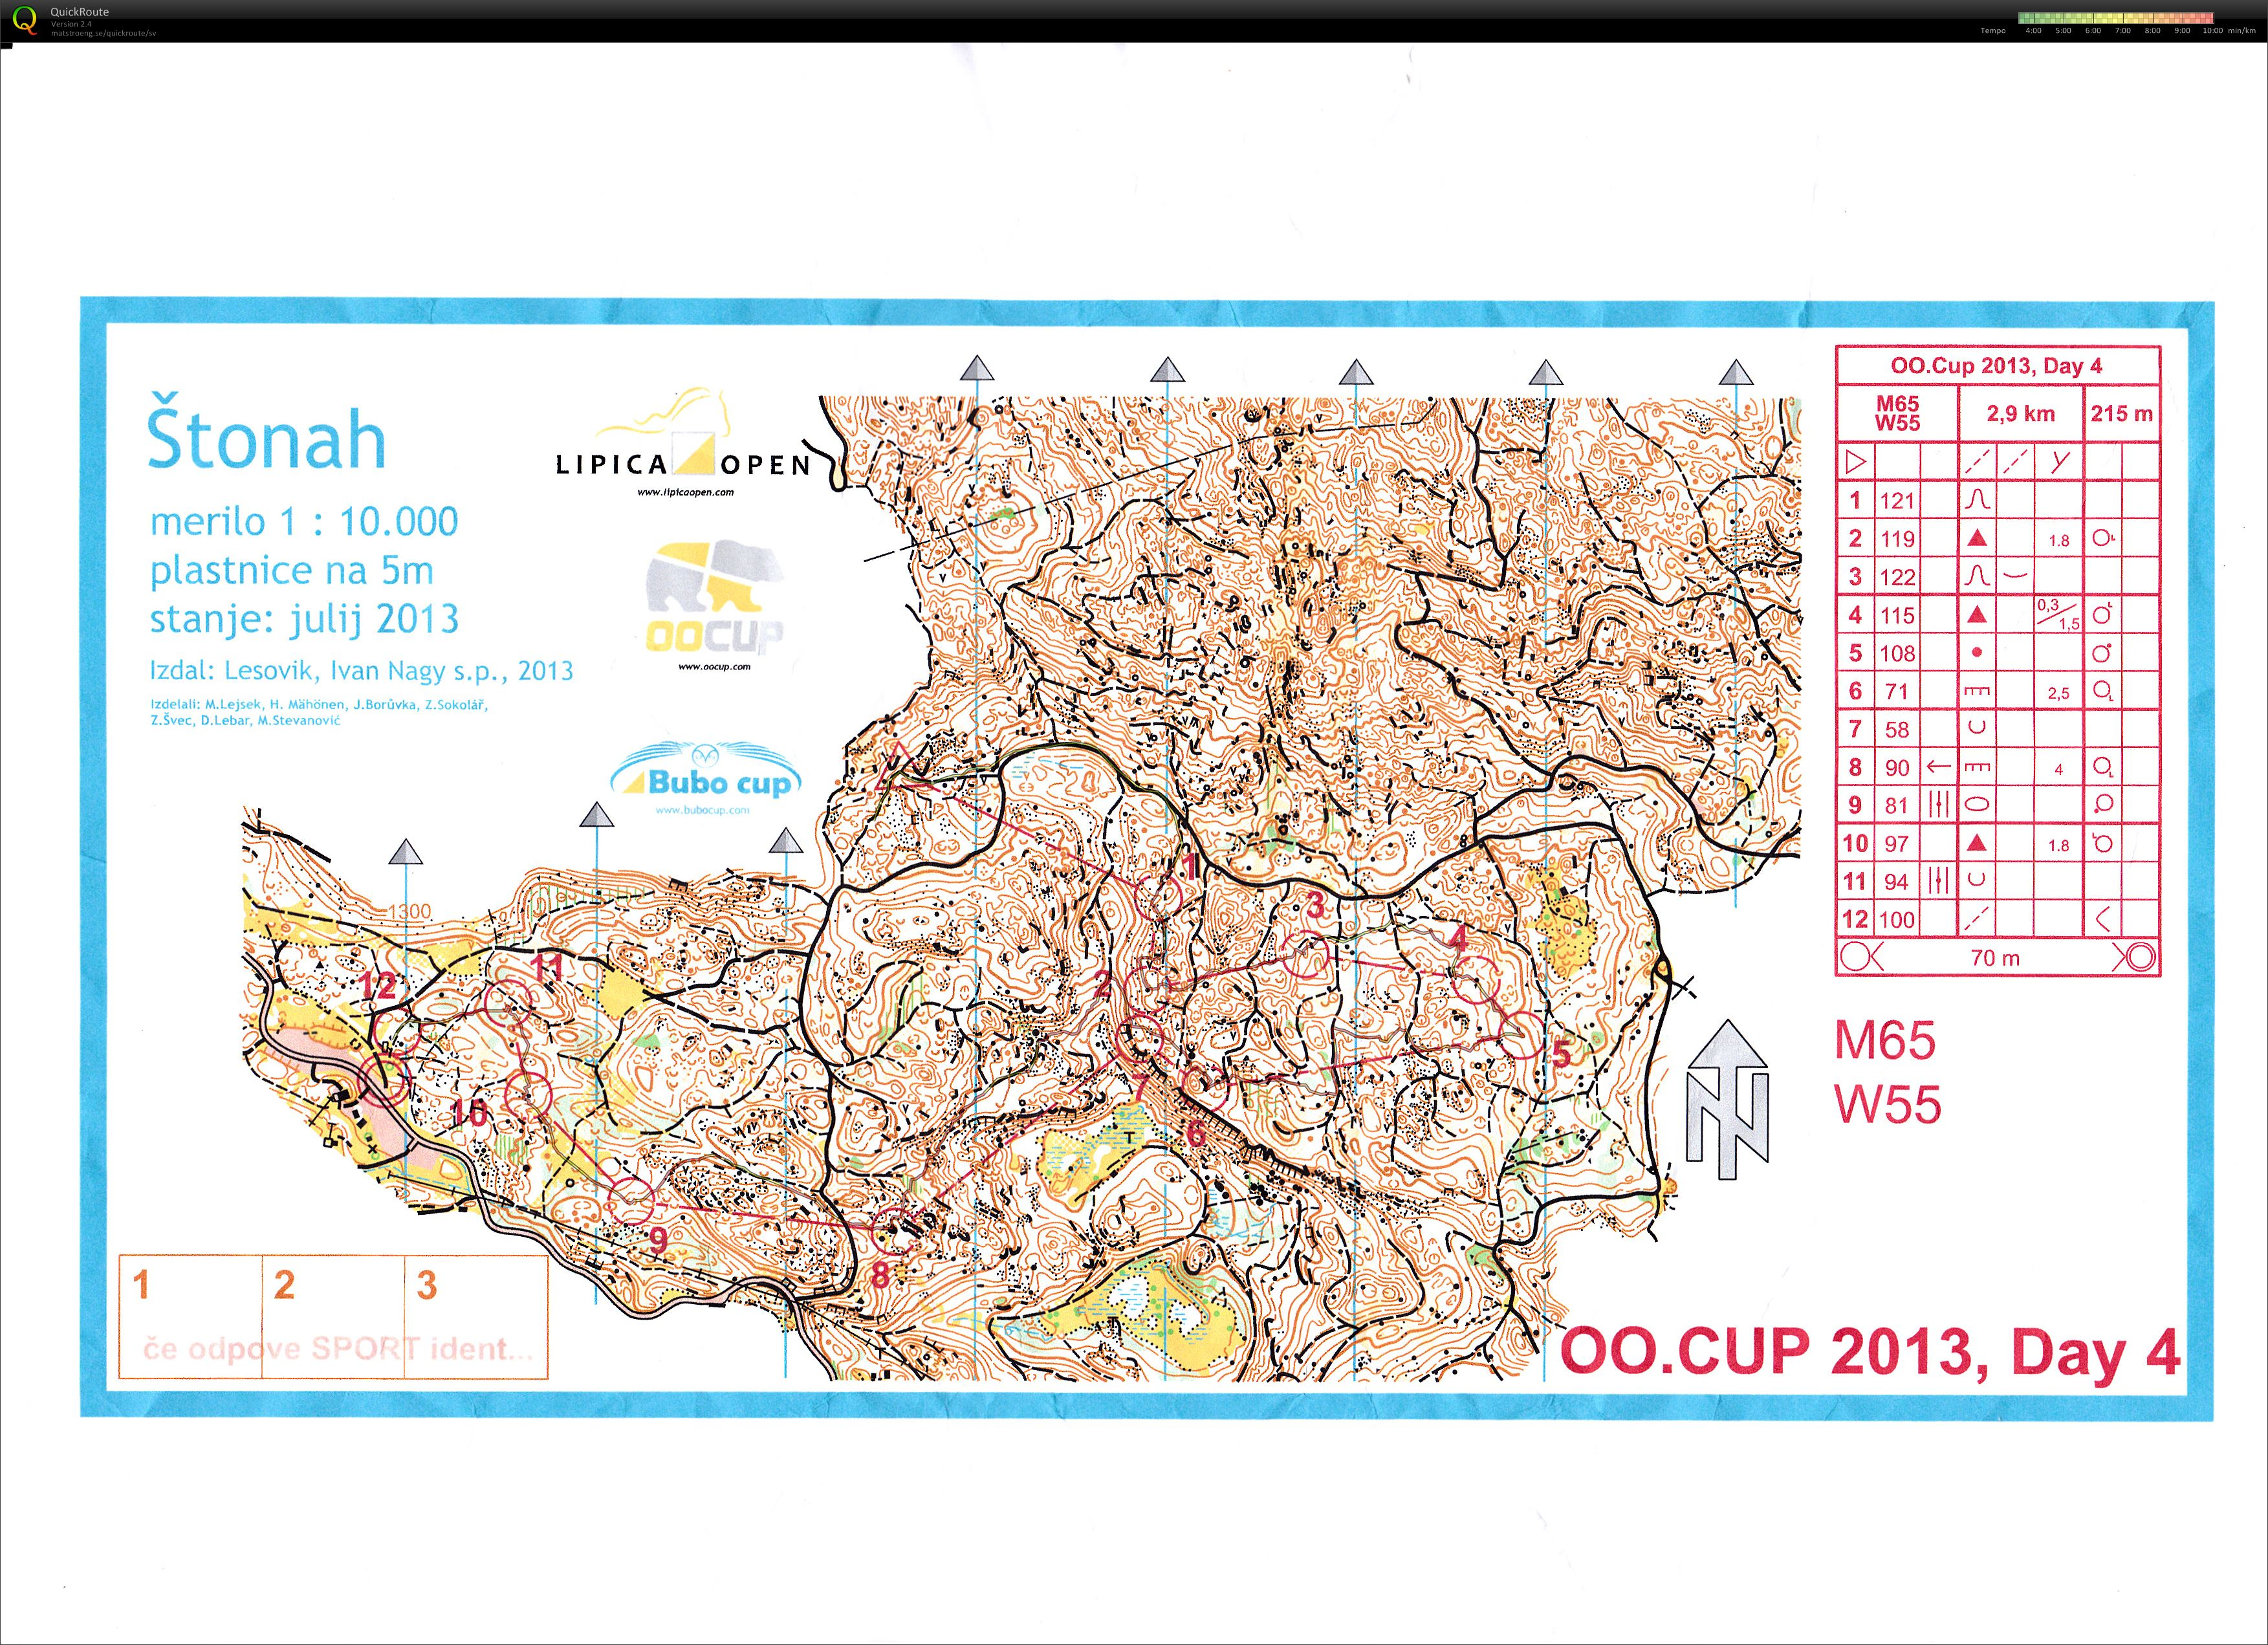 OOCup 2013 Stage 4 (29/07/2013)